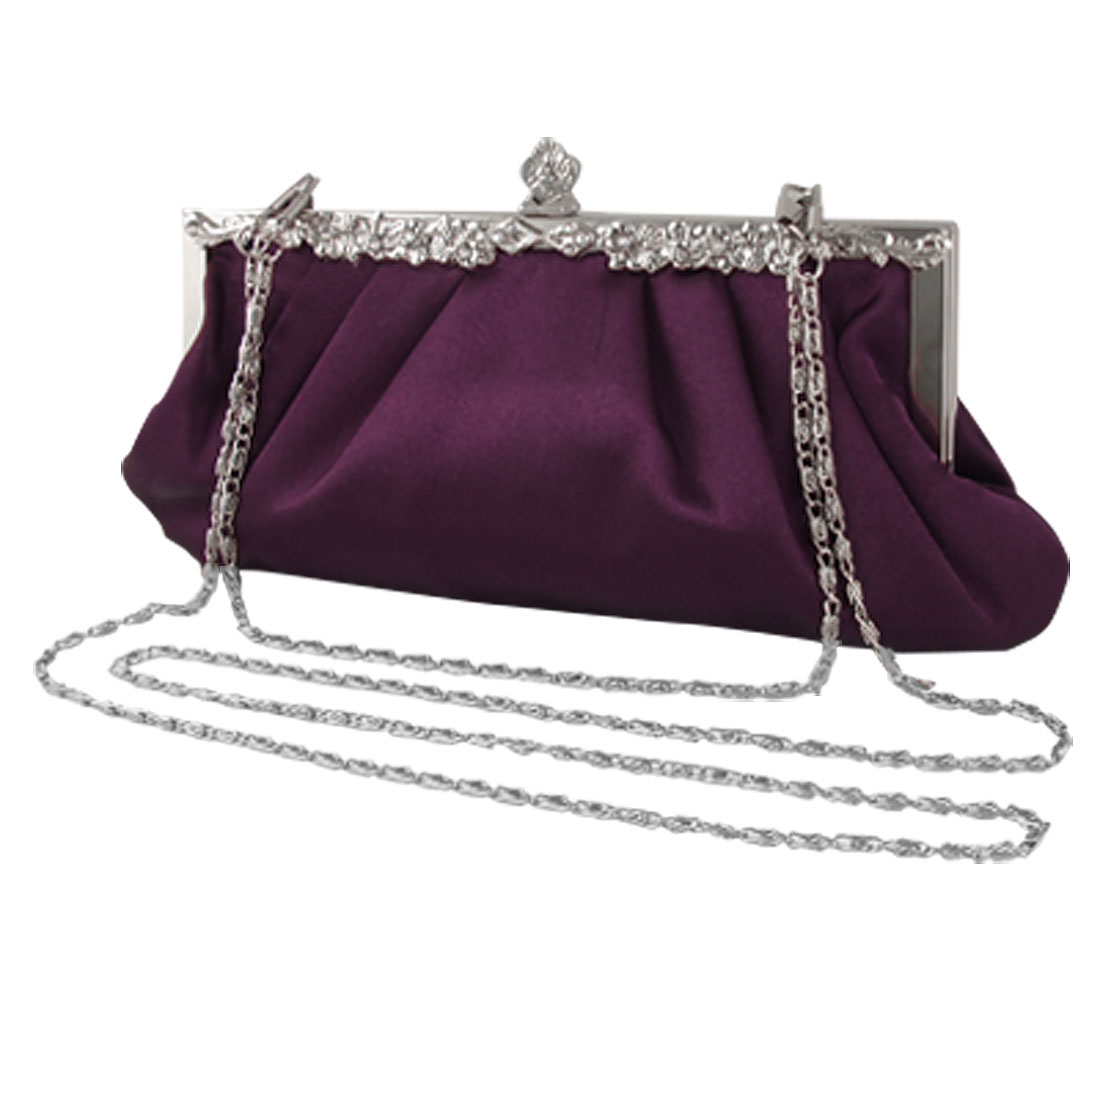 Glitter Rhinestones Accent Metal Frame Wedding Handbag Purple for Women